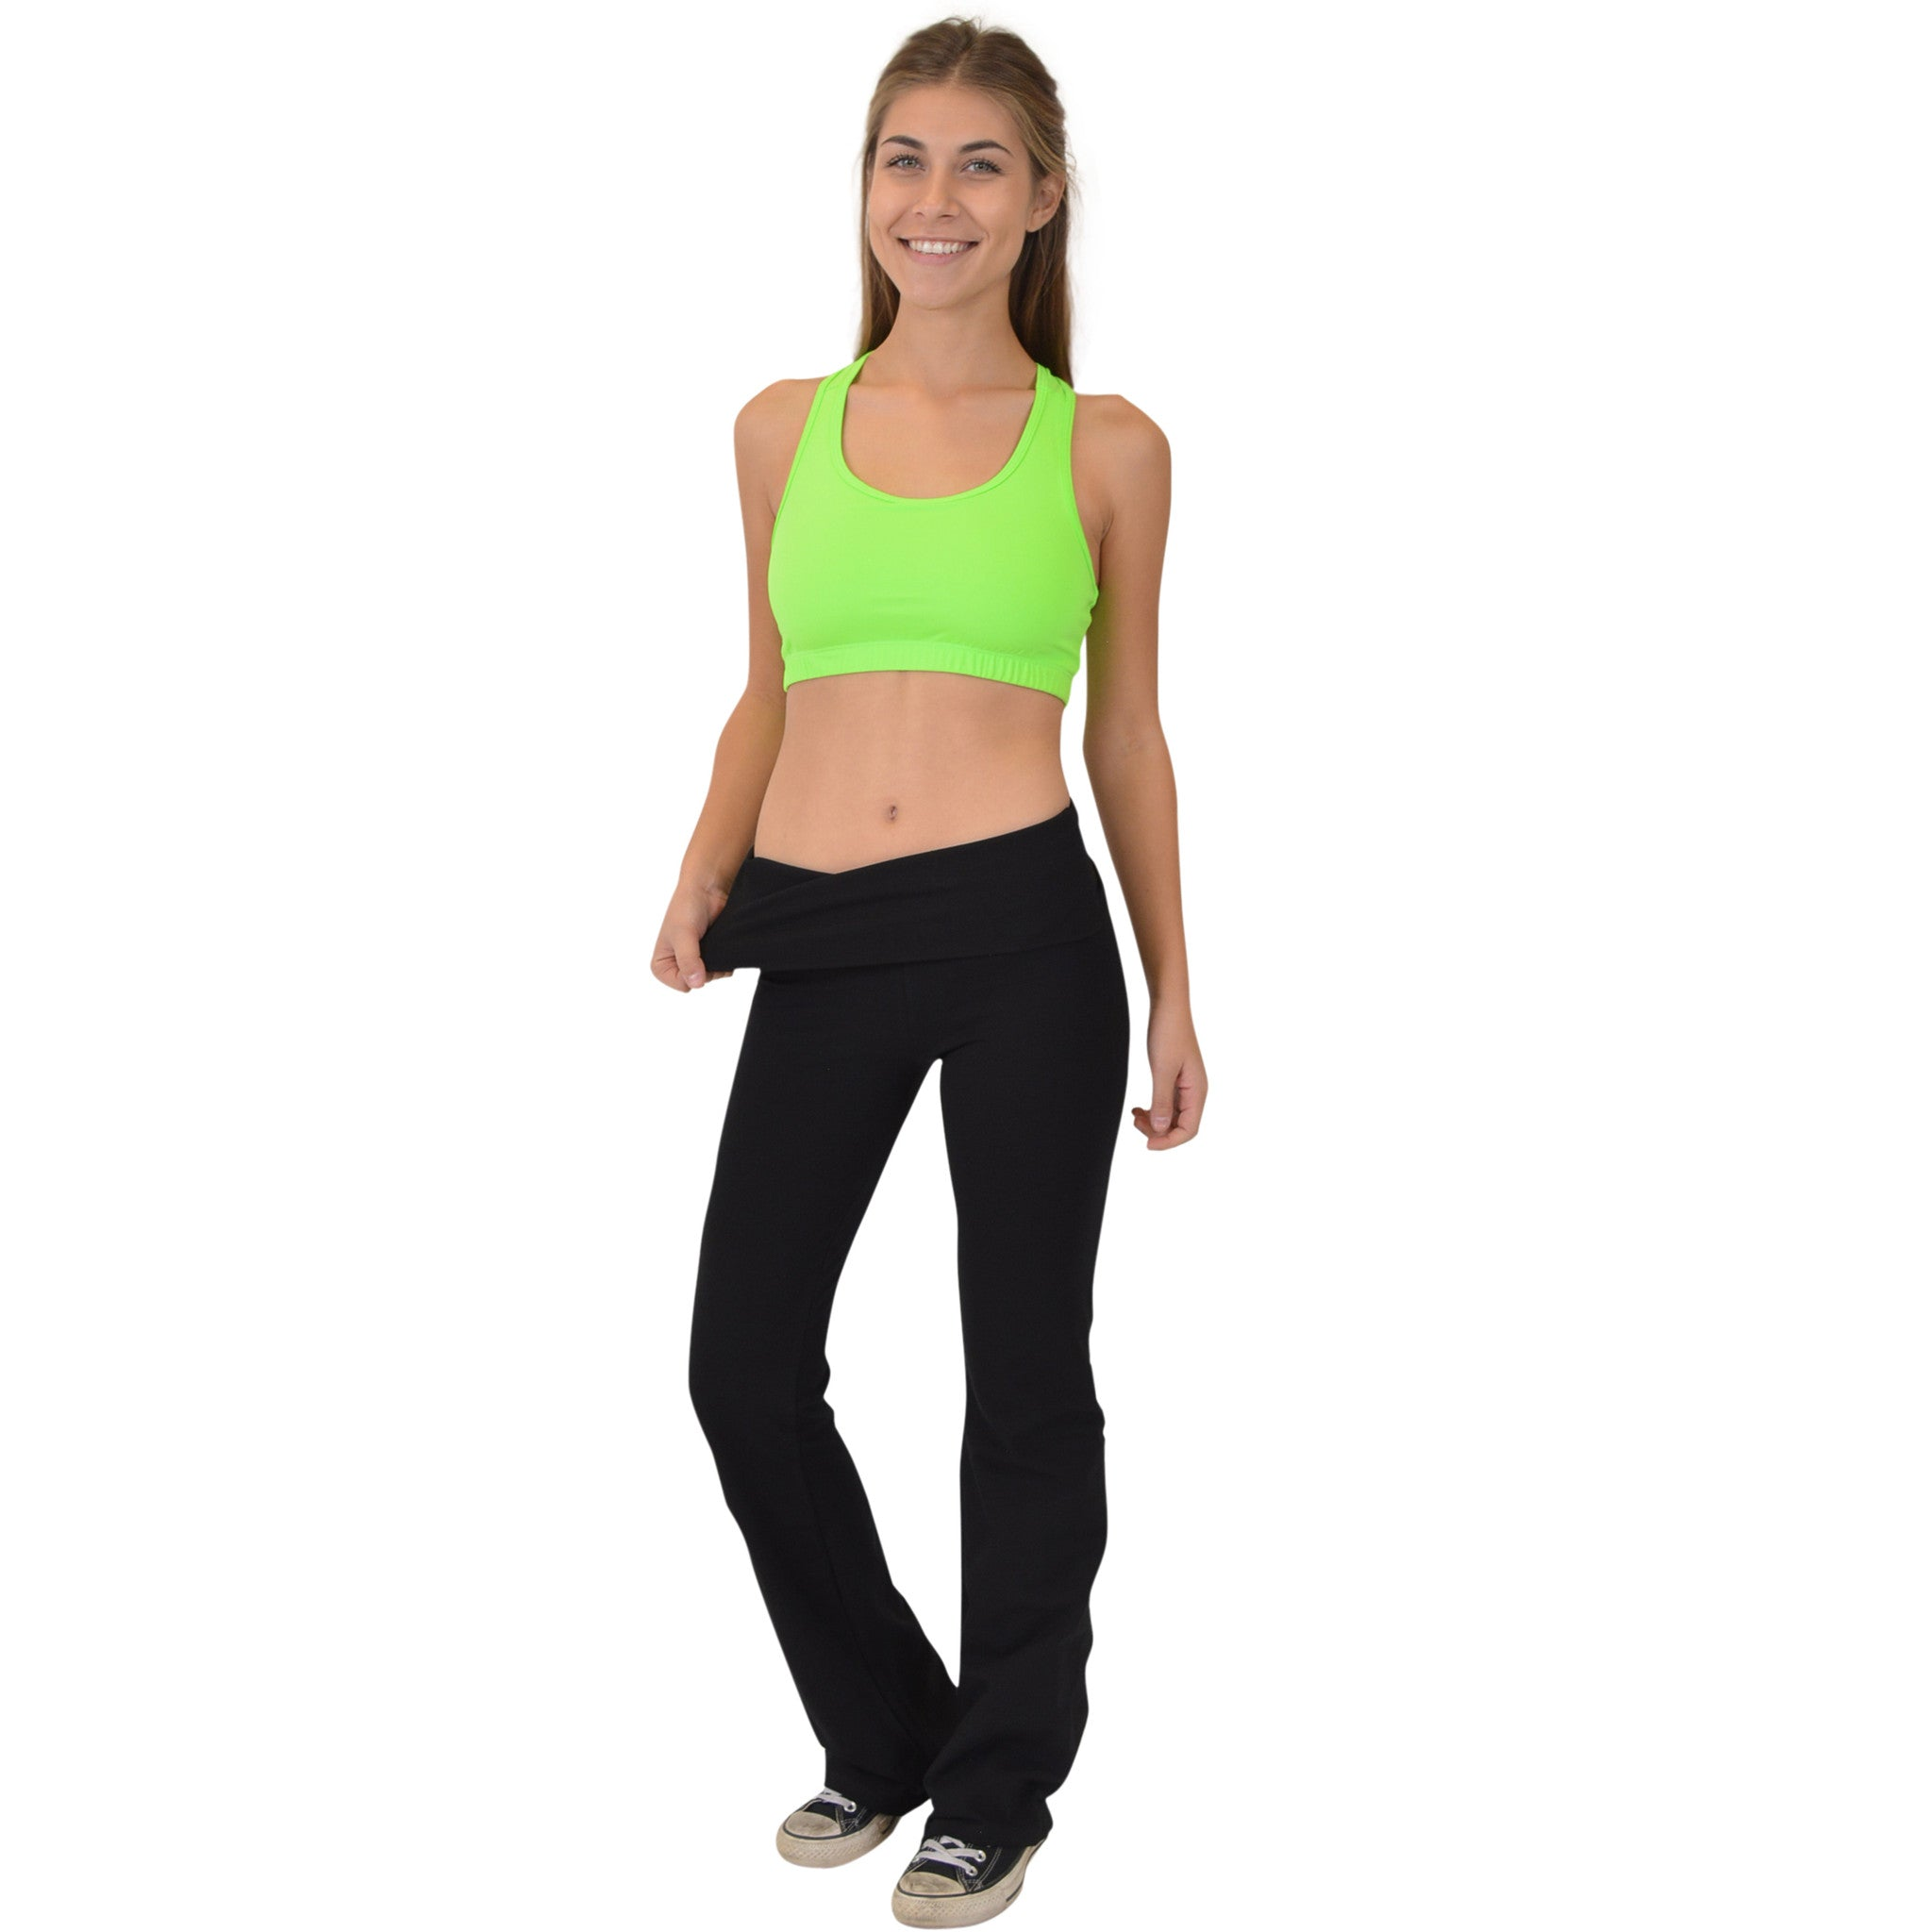 Women's Cotton Yoga Pants